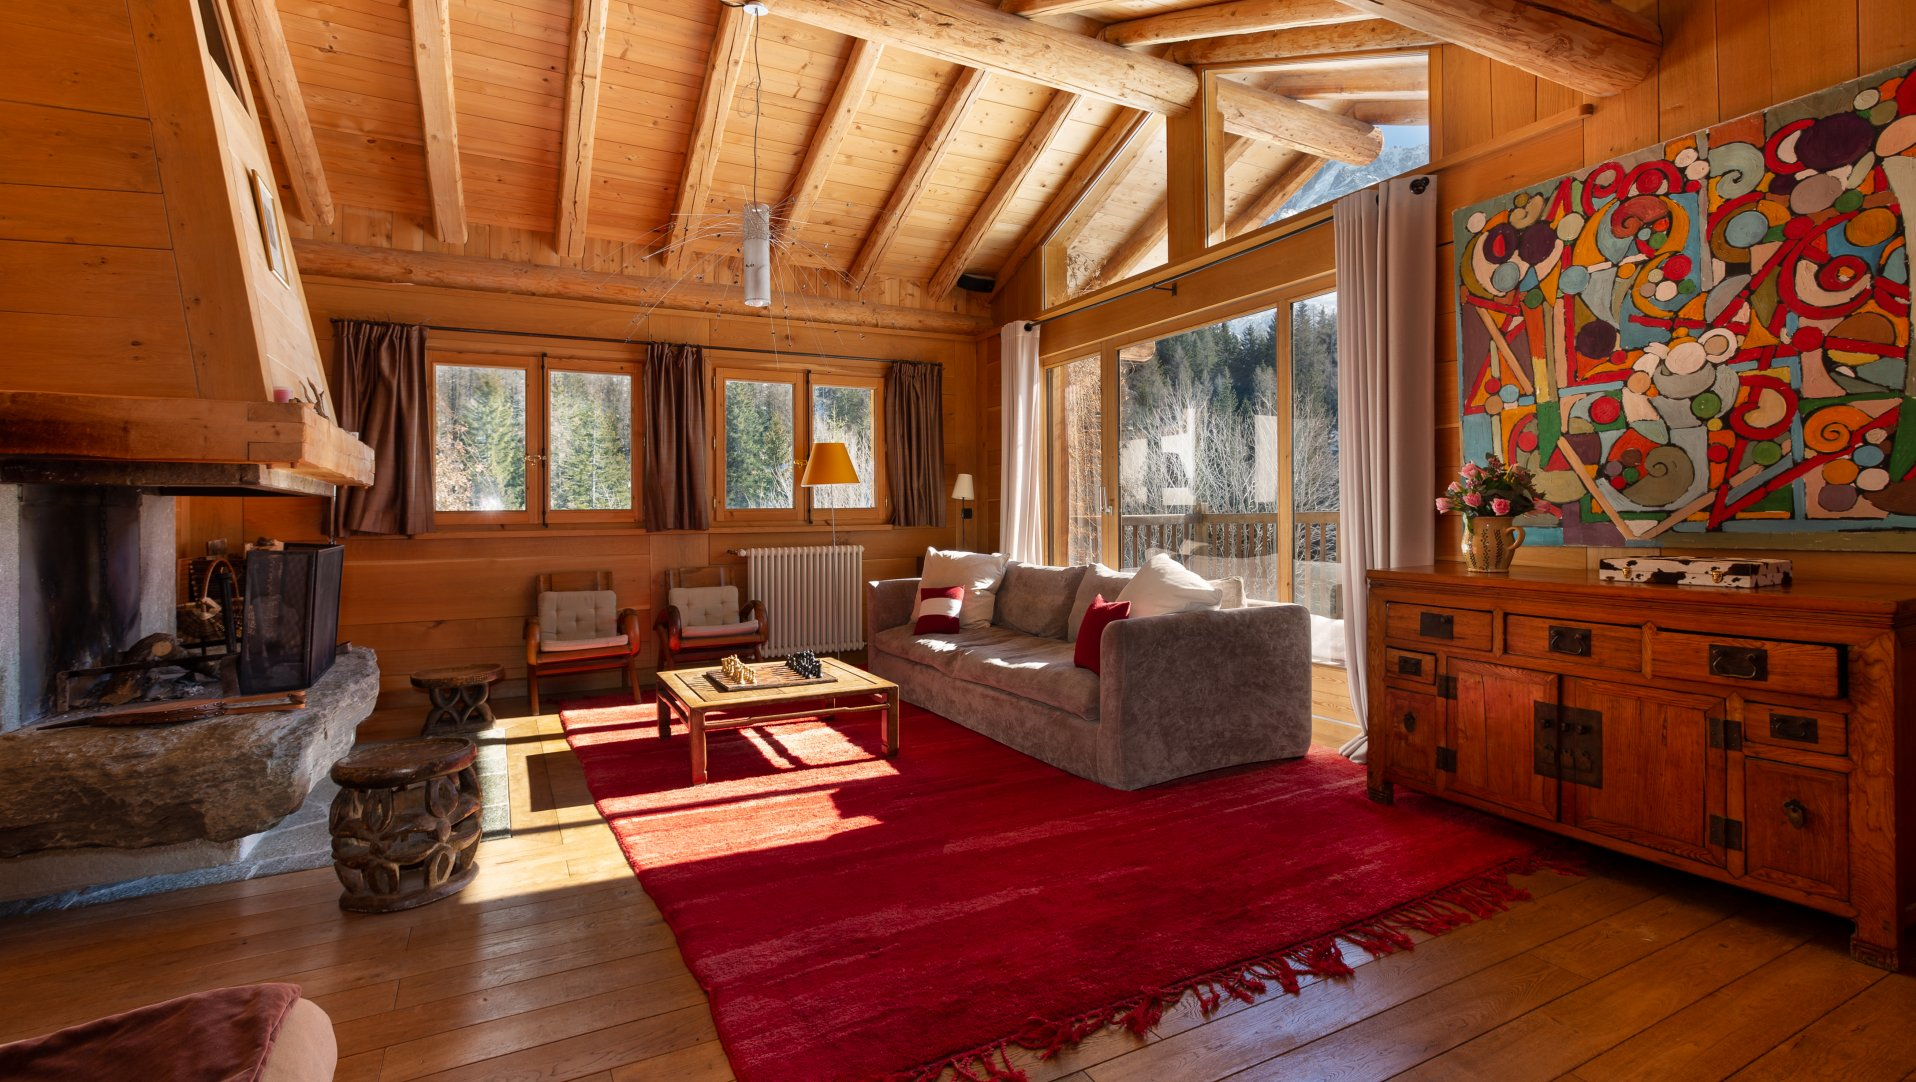 Chamonix Chalet Accommodation   Luxury Catered Chalets, Chamonix  Apartments, Ski And Summer Holidays